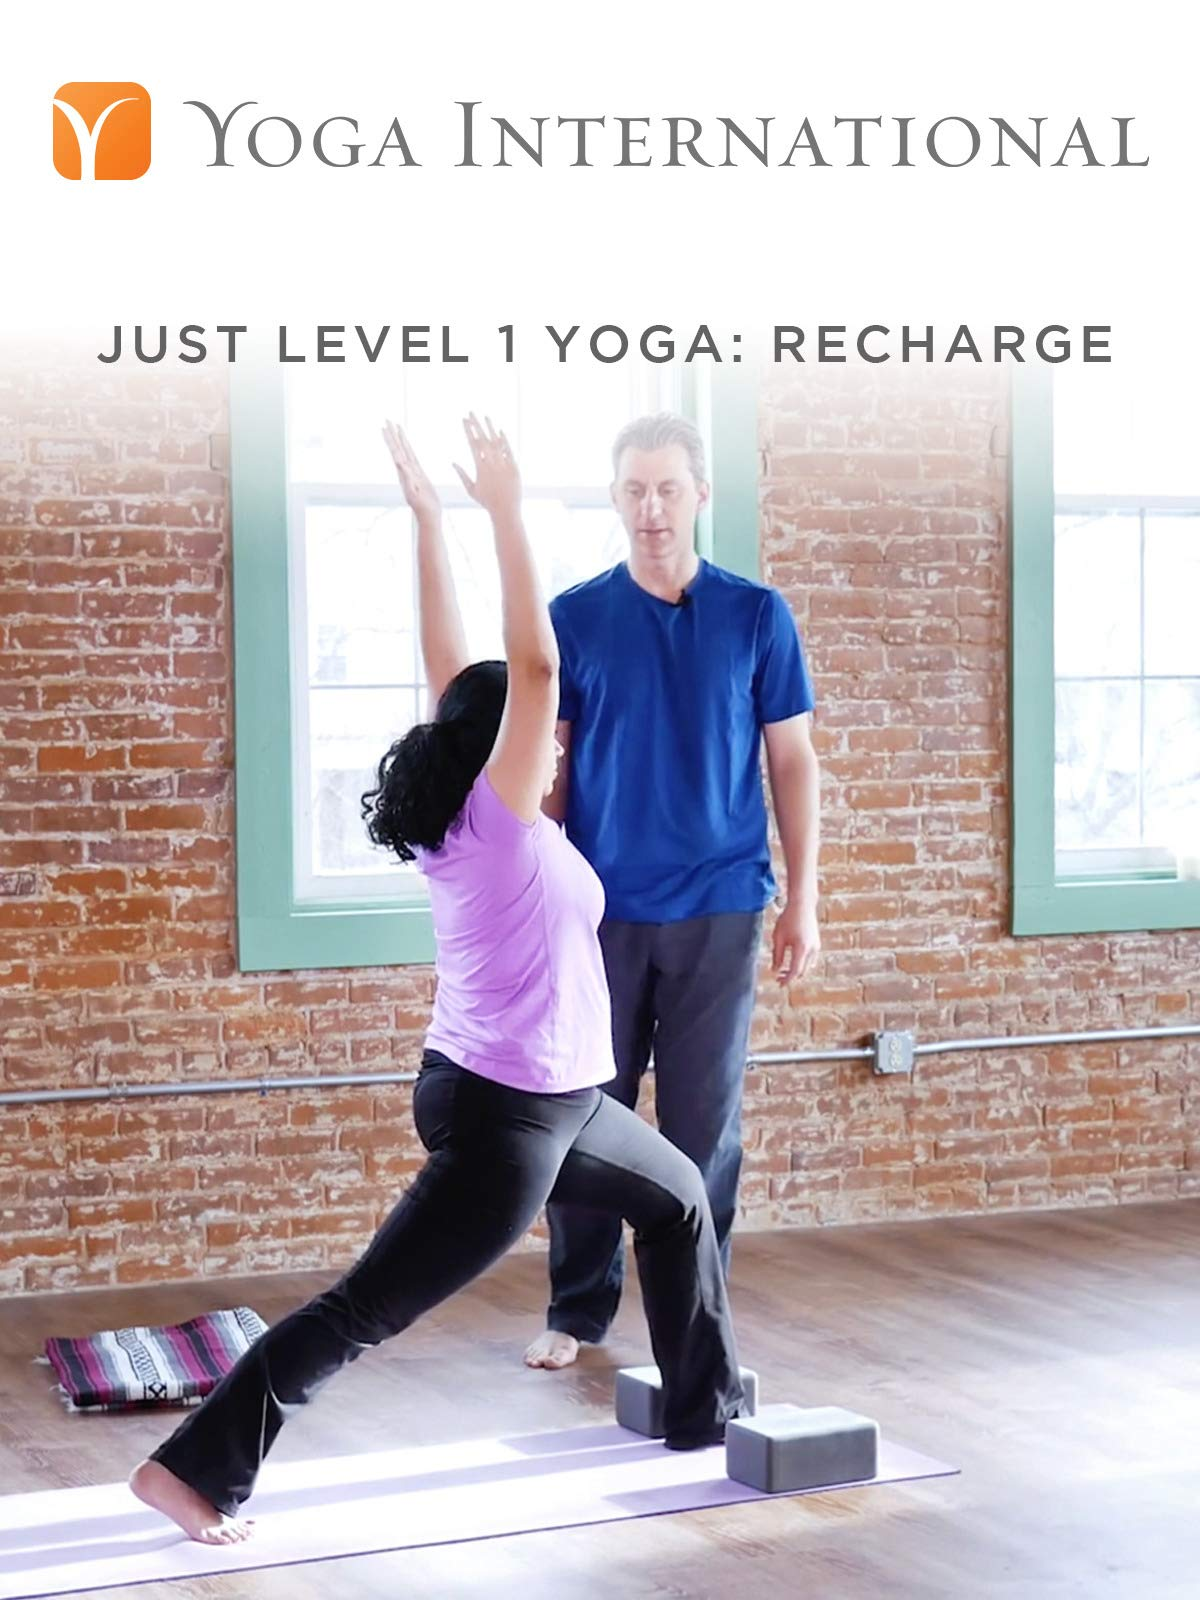 Just Level 1 Yoga: Recharge